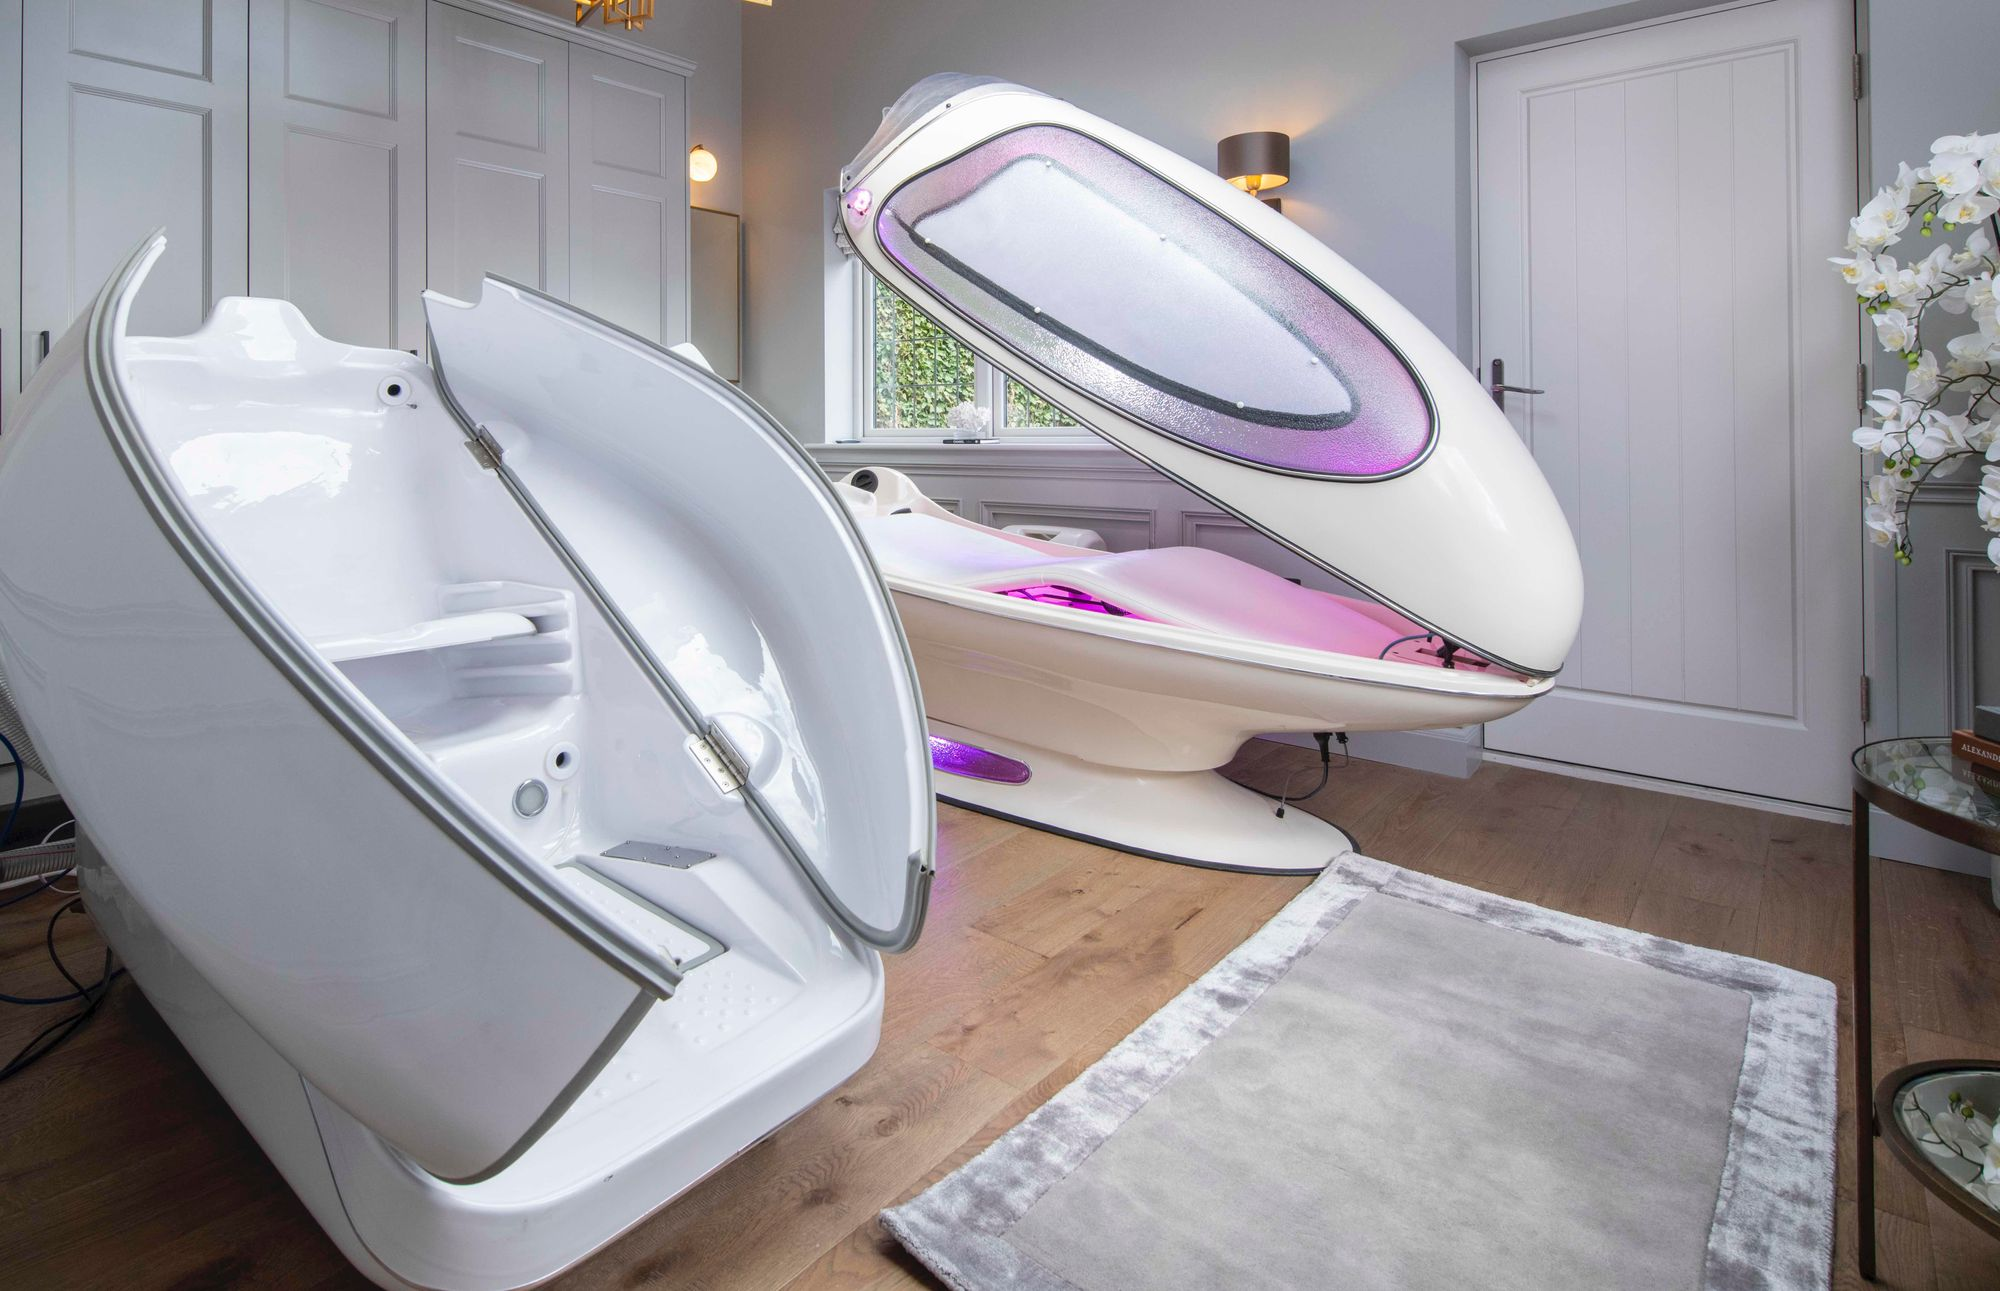 Relax---Fire---Ice-has-invested-in-a-state-of-the-art-ozone-sauna-and-wellness-pod--pictured-